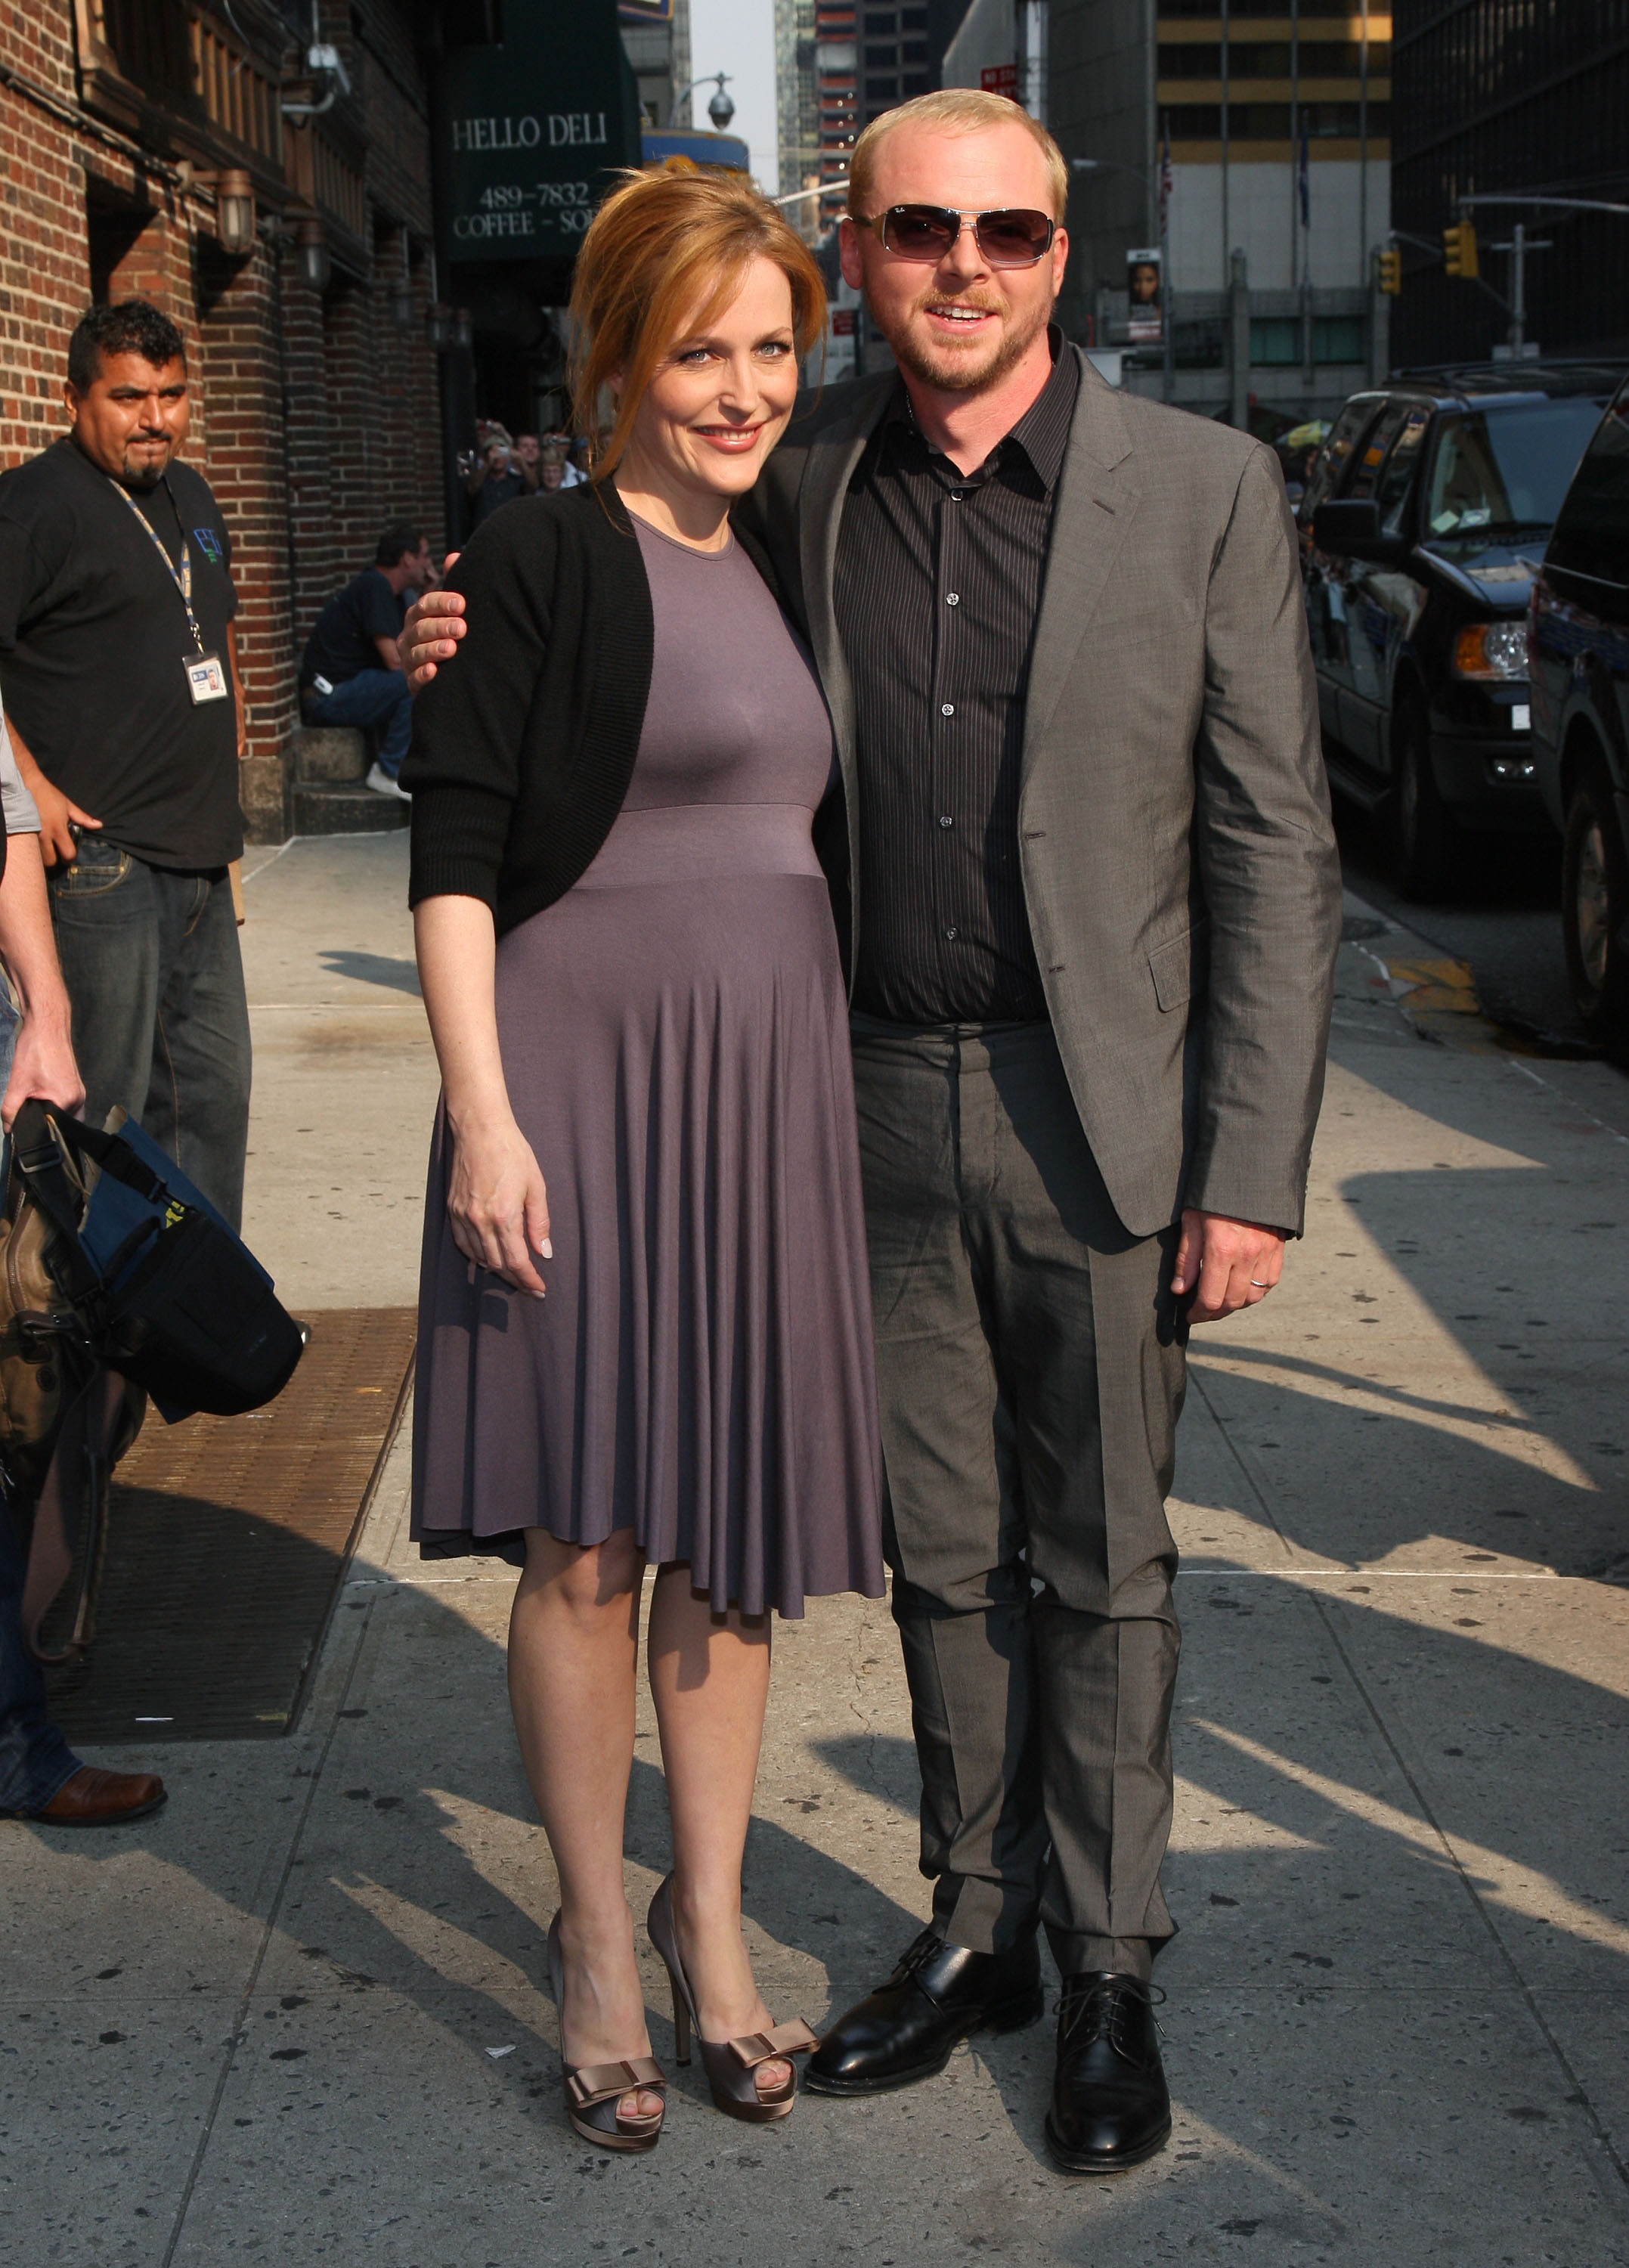 Gillian with Simon Pegg